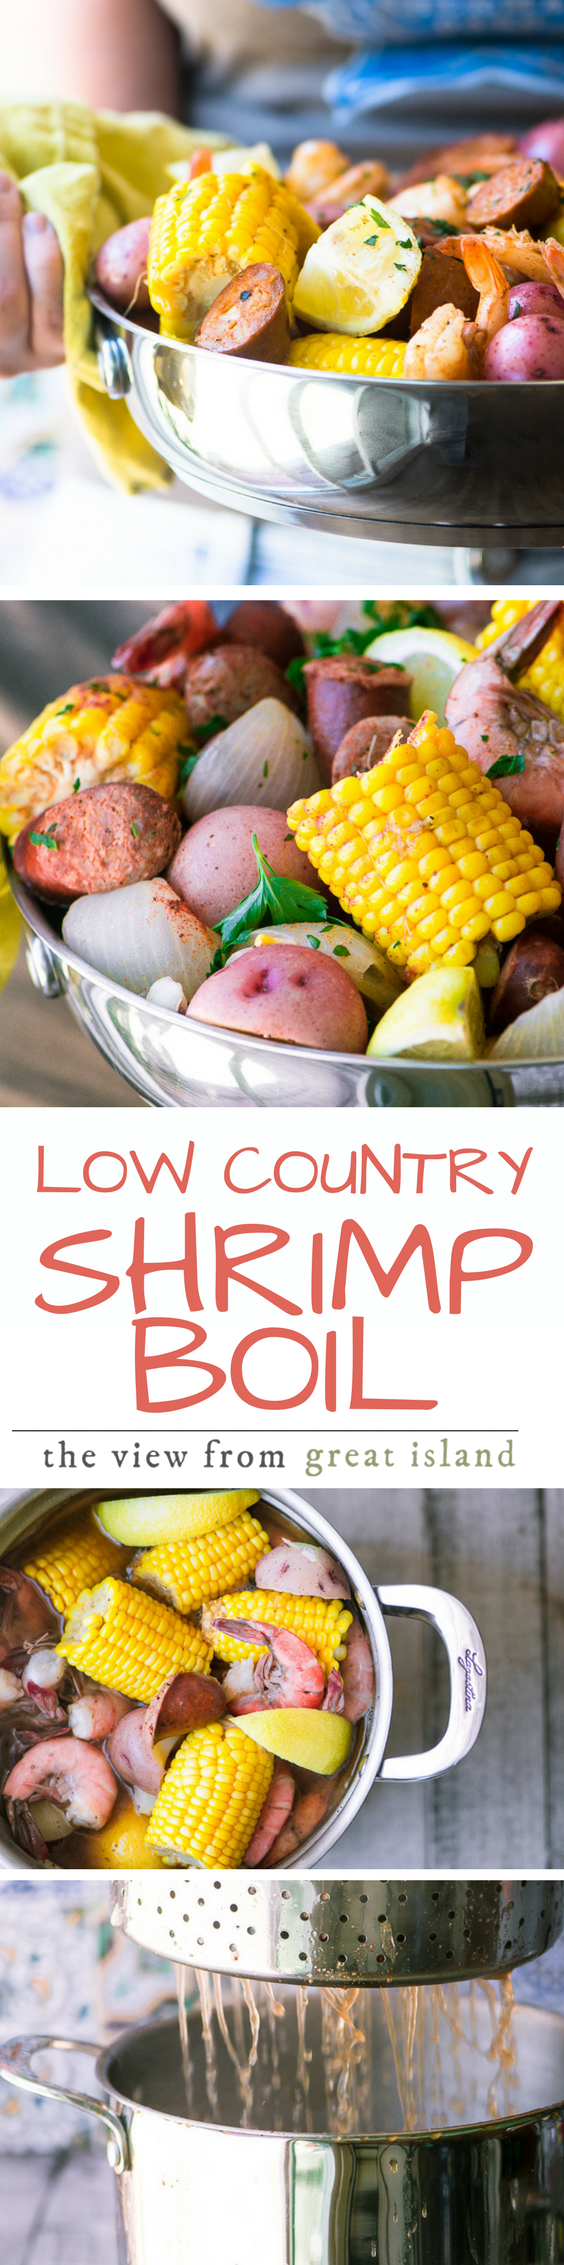 Low Country Shrimp Boil ~ this iconic Southern feast is the ultimate one pot meal ~ Vidalia onions, potatoes, corn, Andouille sausage, and shrimp get layered into a large stock pot with Cajun spices ~ just add friends and lots of ice cold beer! | Southern | Louisiana | seafood | summer cooking | entertaining recipe | Easy main course |